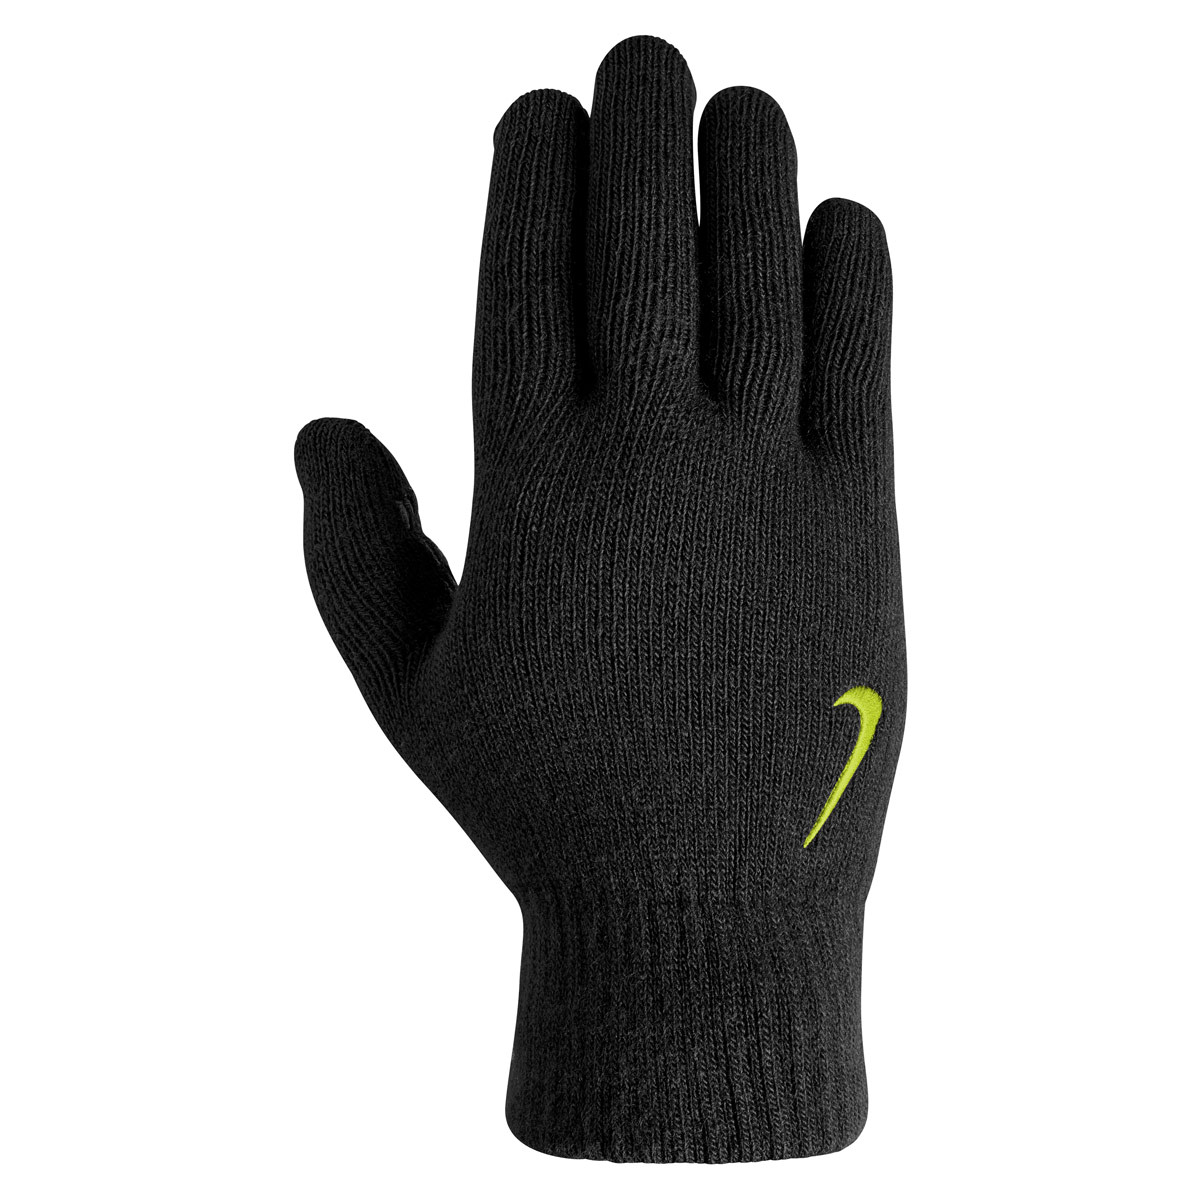 Nike Knitted Tech And Grip Gloves - Running gloves - Black